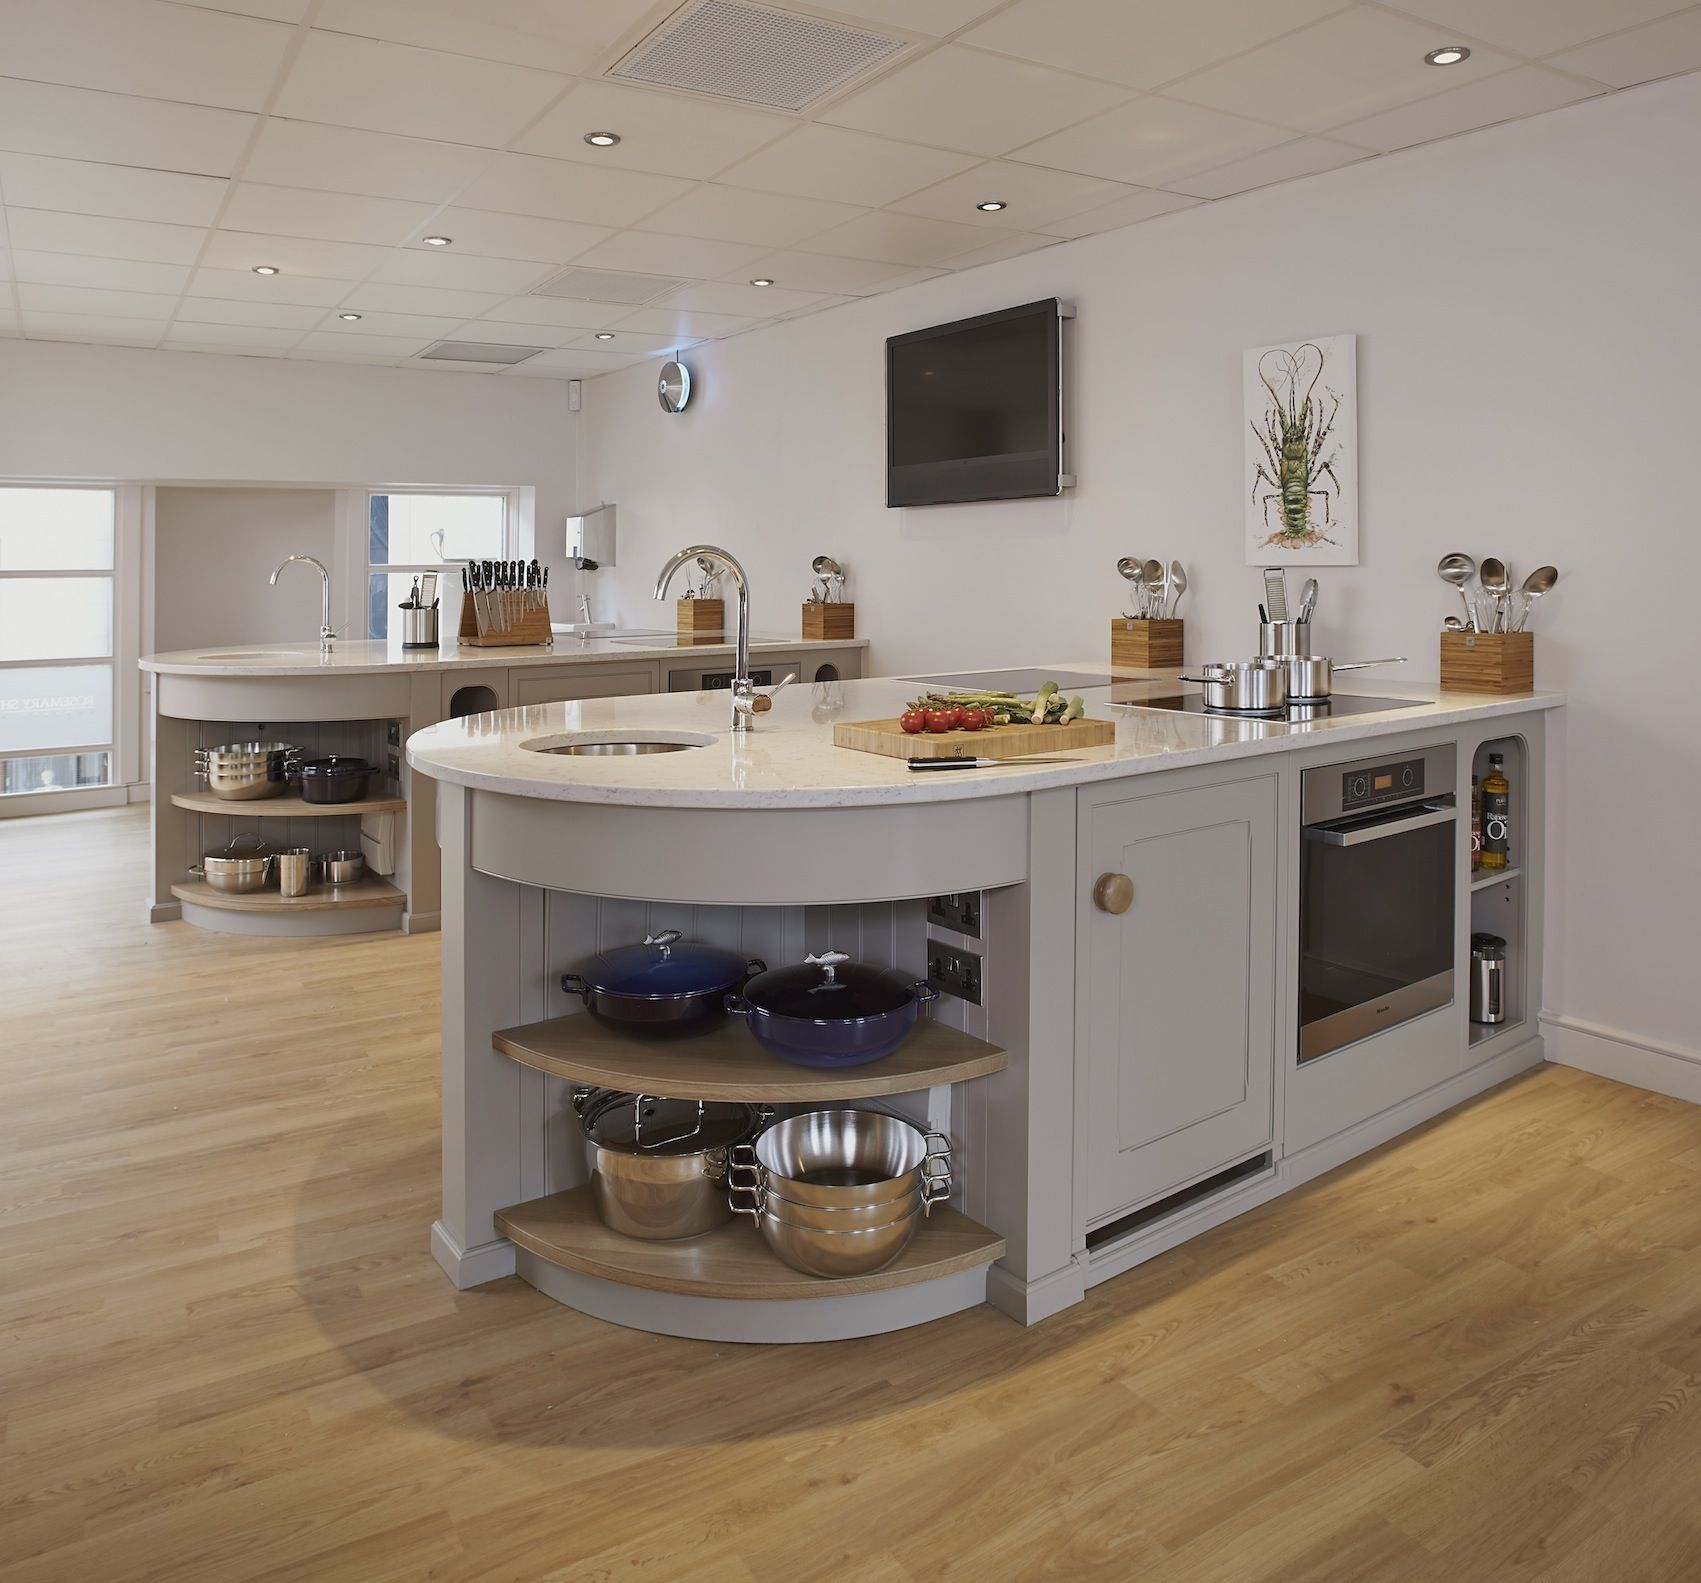 Kitchen Design Kent: Rosemary Shrager Cookery School In Kent